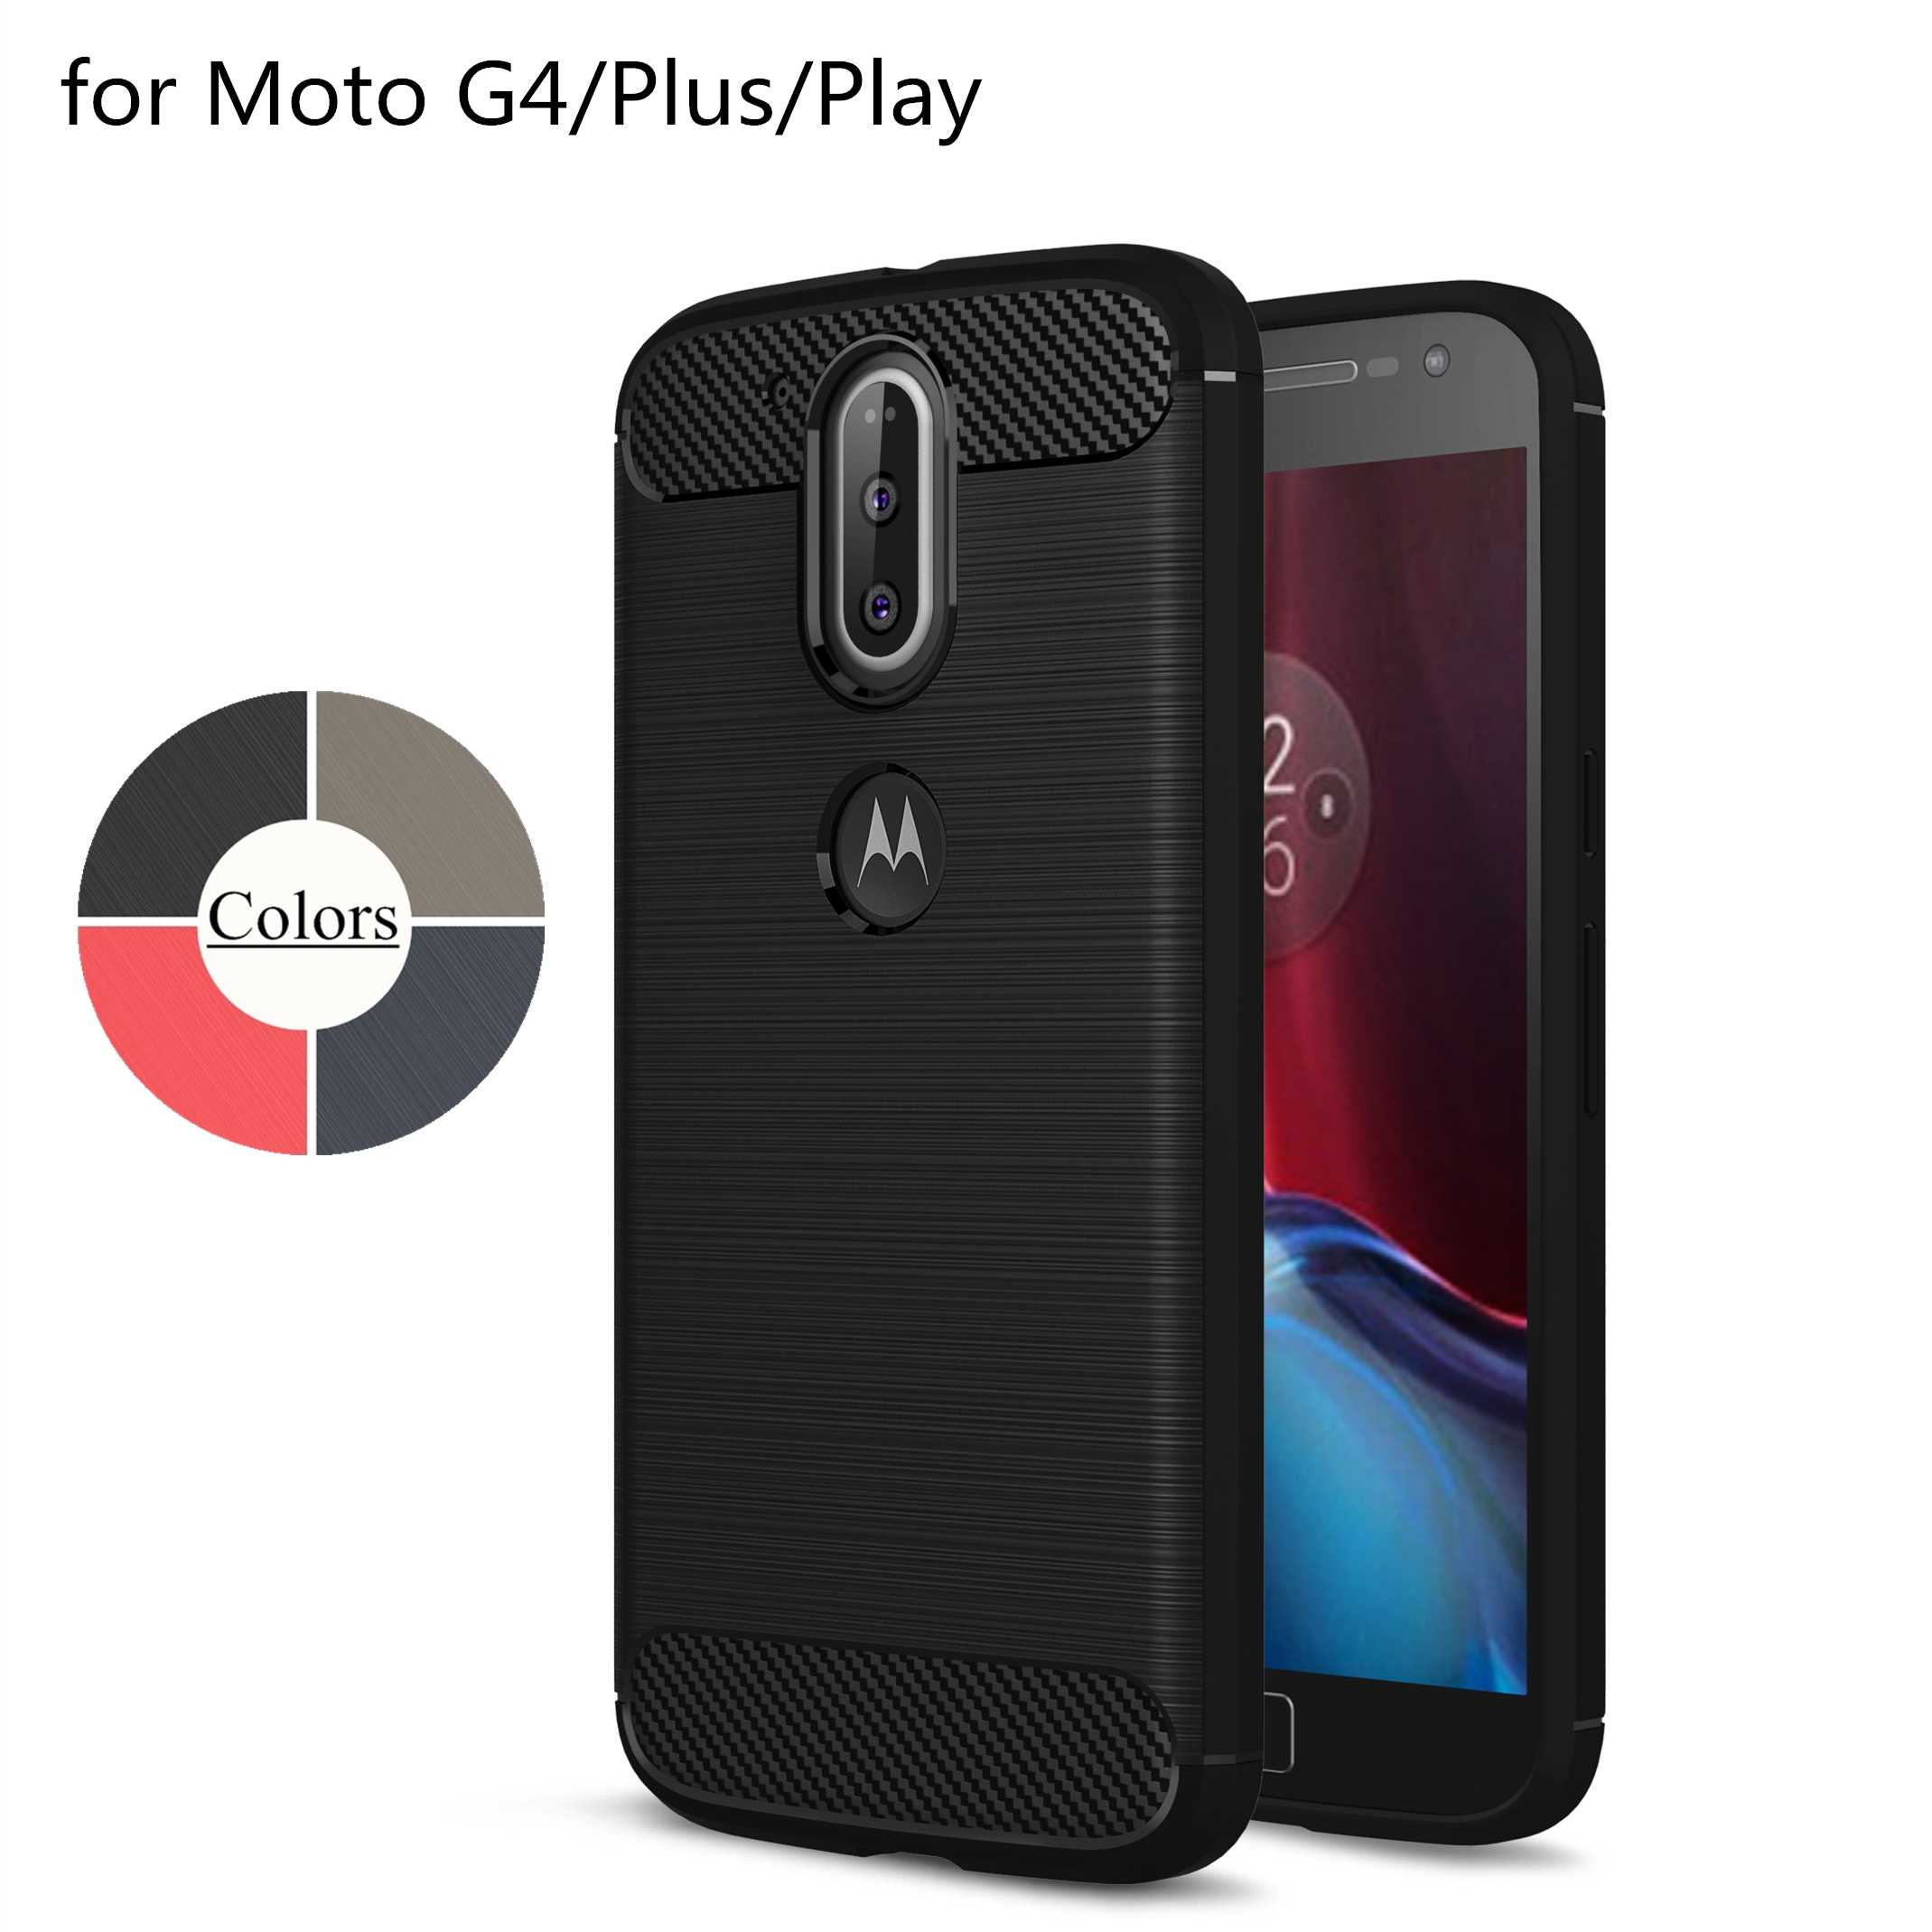 Case for Motorola Moto G4 / G4 Plus / G4 Play TPU Silicone Case Ultra-thin  Soft Cover Matte Feel Phone Case Rugged Armor